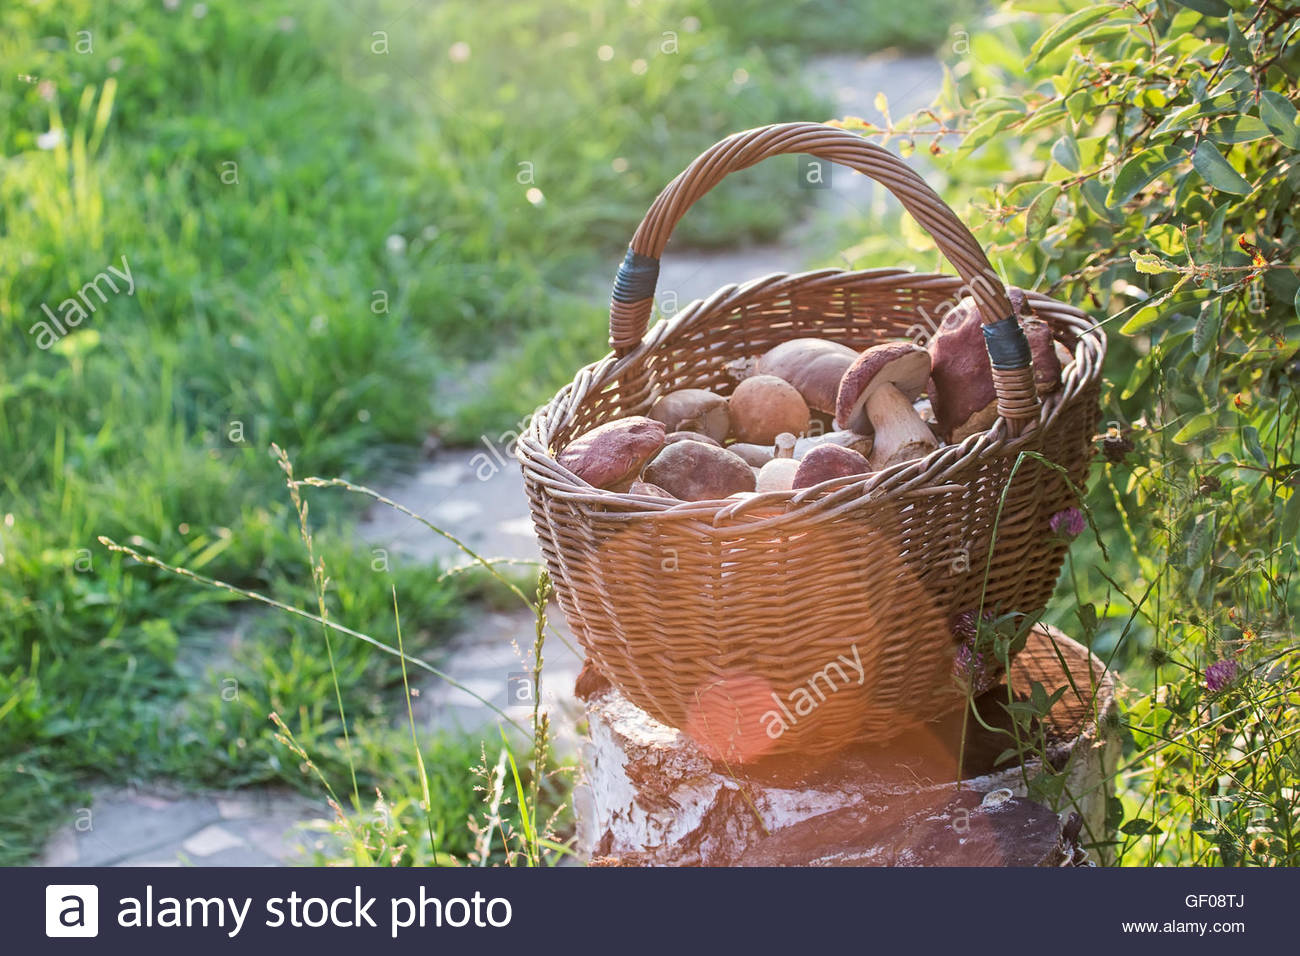 full basket with mushrooms standing on the stub - Stock Image